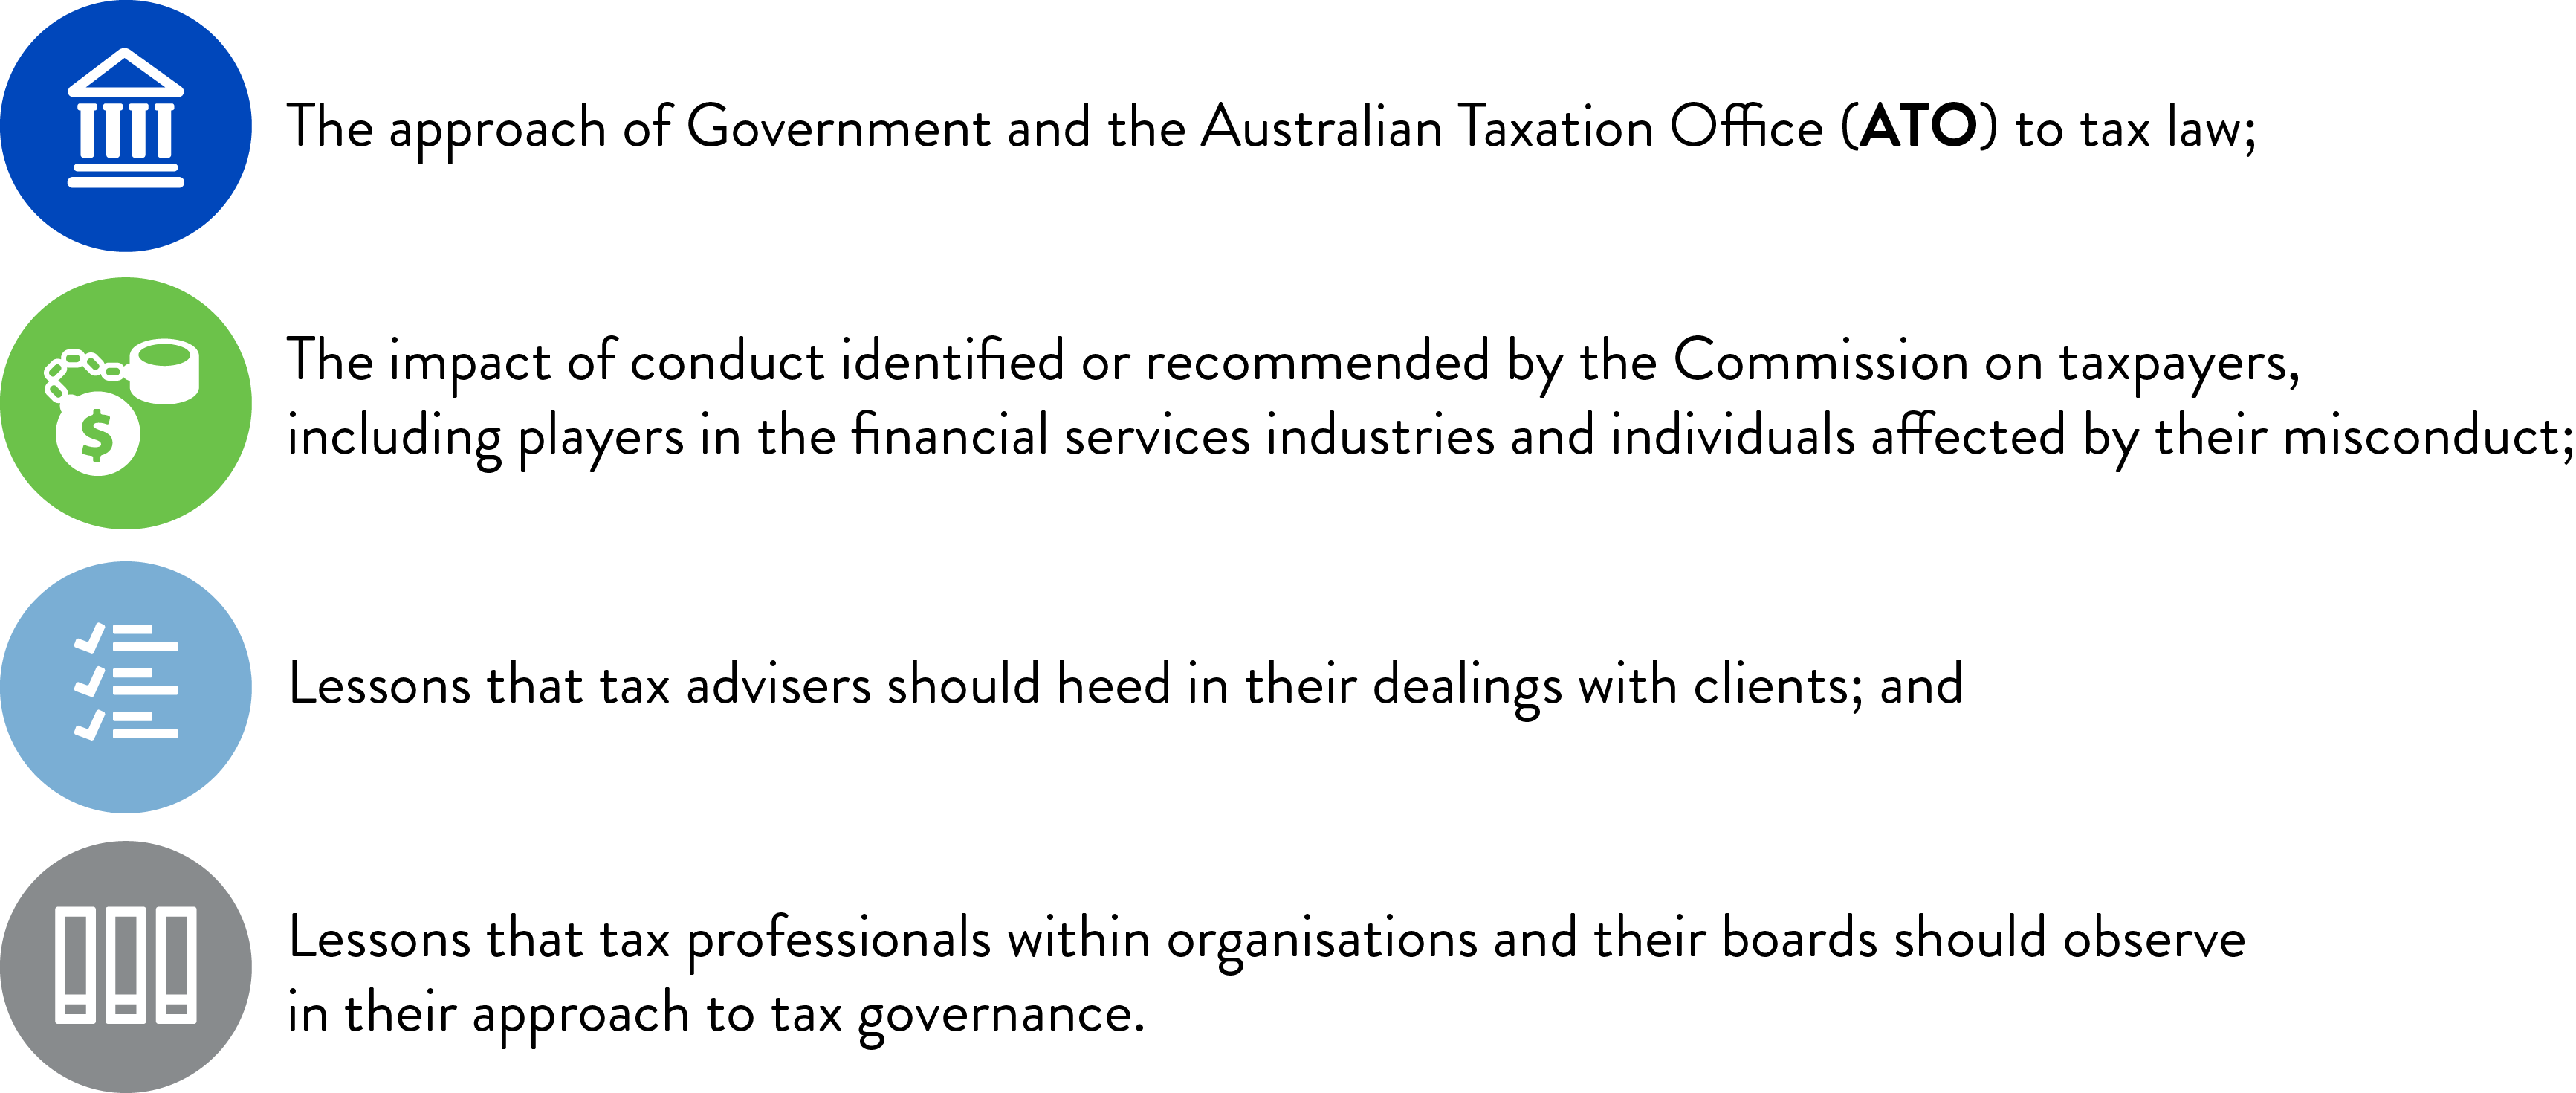 Image with the text: 1	The approach of Government and the Australian Taxation Office (ATO) to tax law; 2	The impact of conduct identified or recommended by the Commission on taxpayers, including players in the financial services industries and individuals affected by their misconduct; 3	Lessons that tax advisers should heed in their dealings with clients; and 4	Lessons that tax professionals within organisations and their boards should observe in their approach to tax governance.